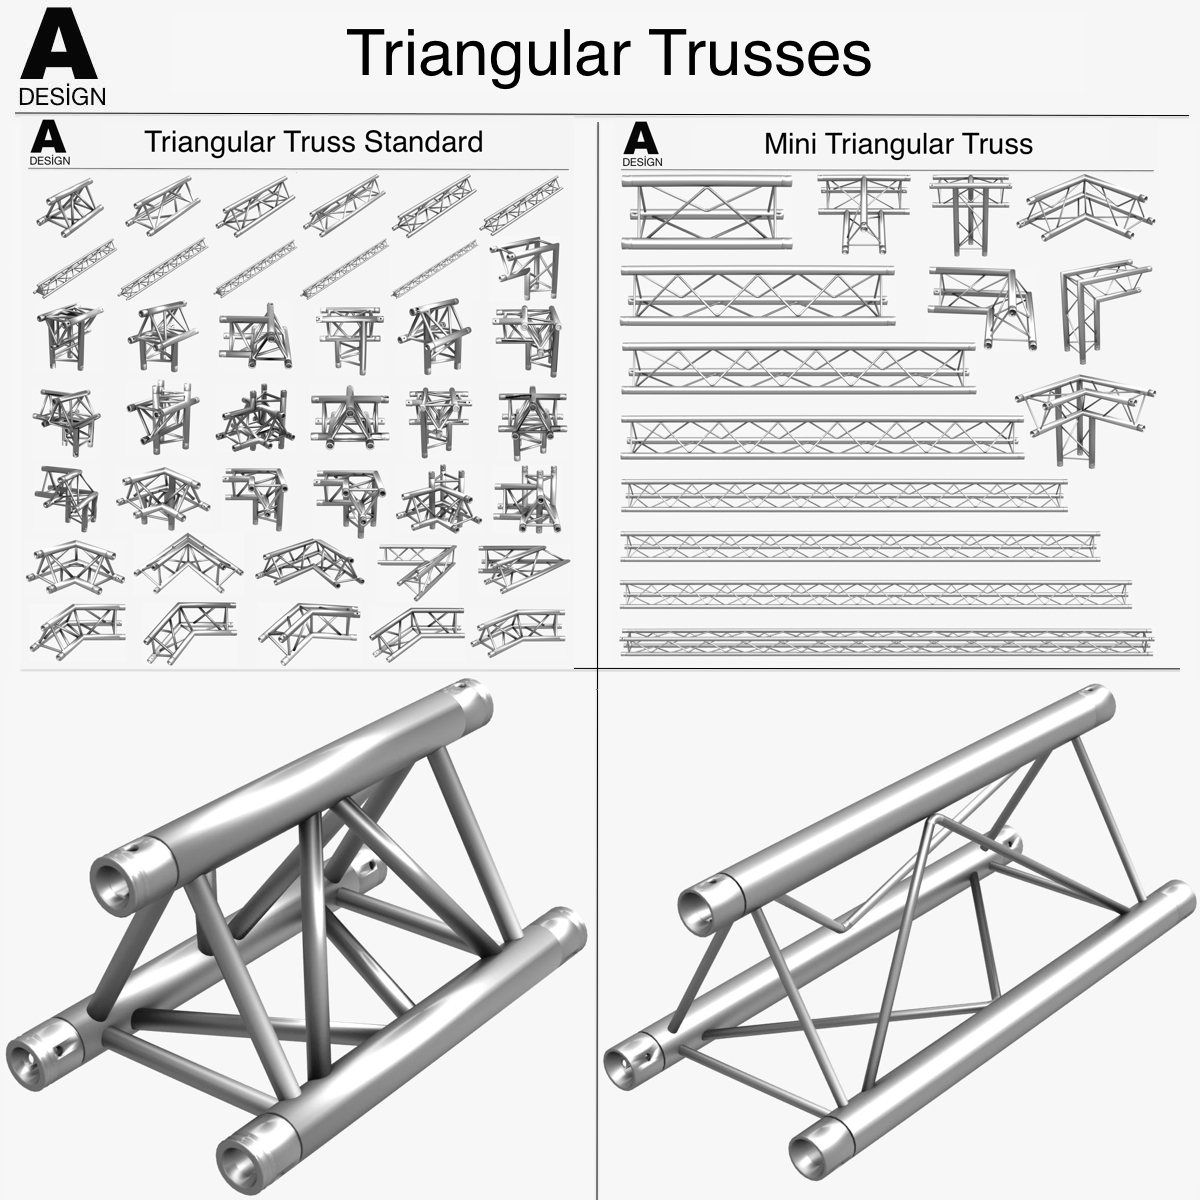 30-02-TriangularTrusses